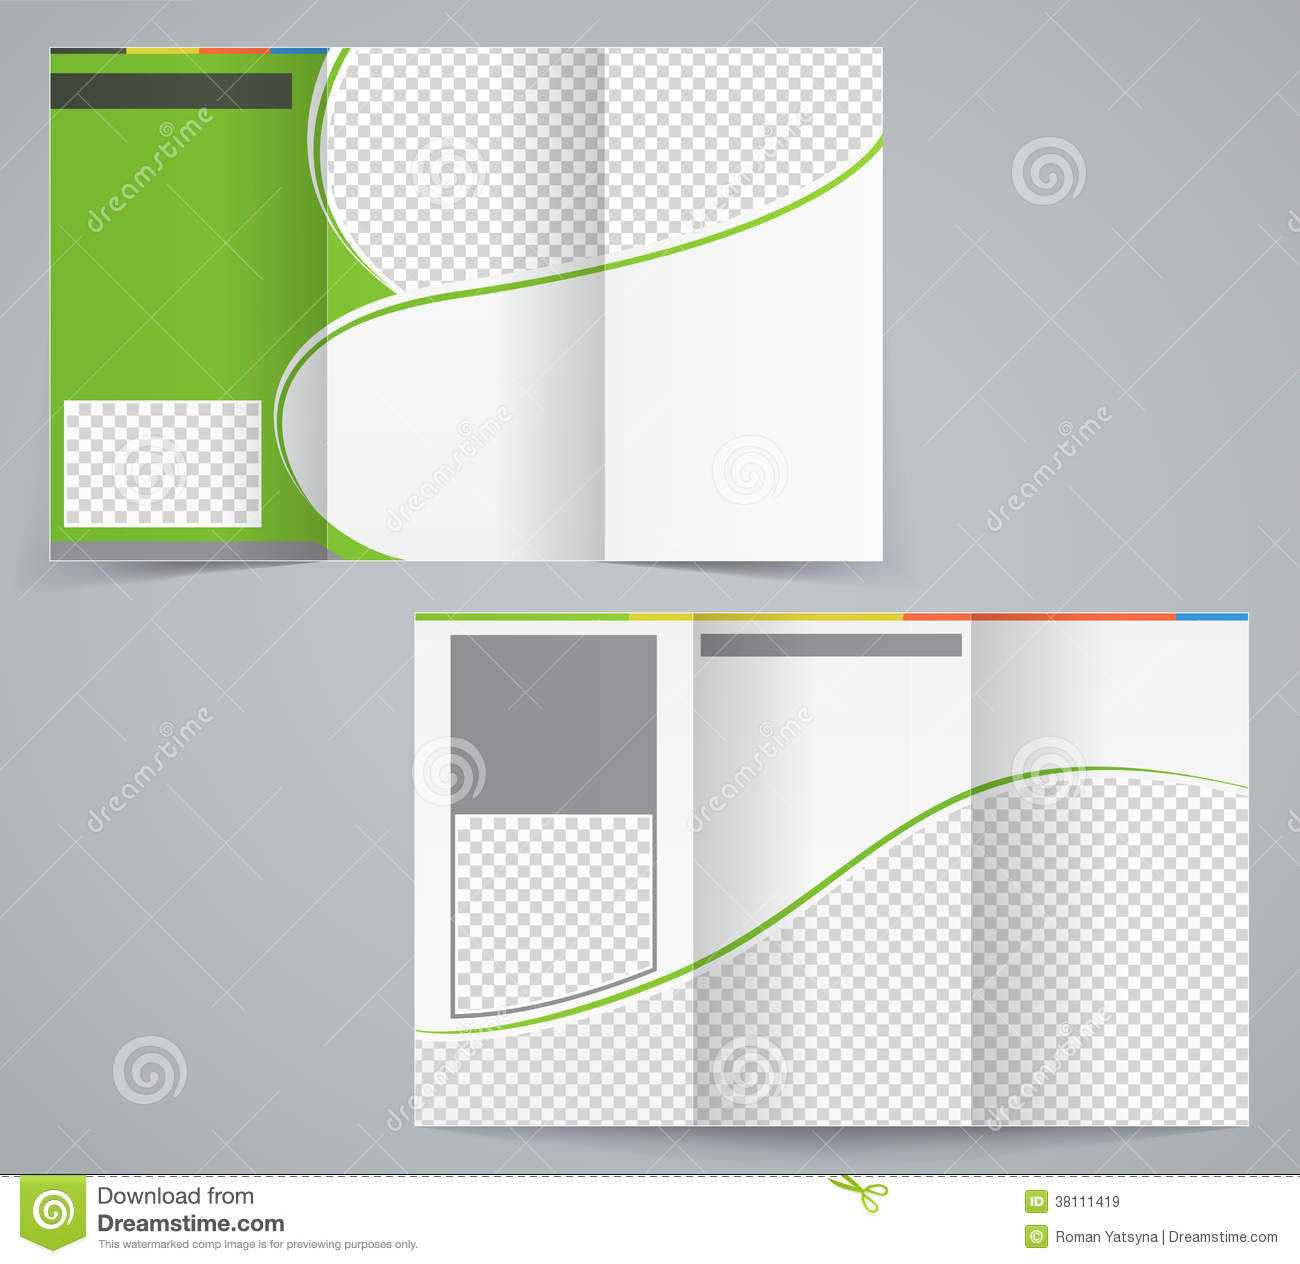 Tri Fold Business Brochure Template, Vector Green Stock Pertaining To Brochure Template Illustrator Free Download